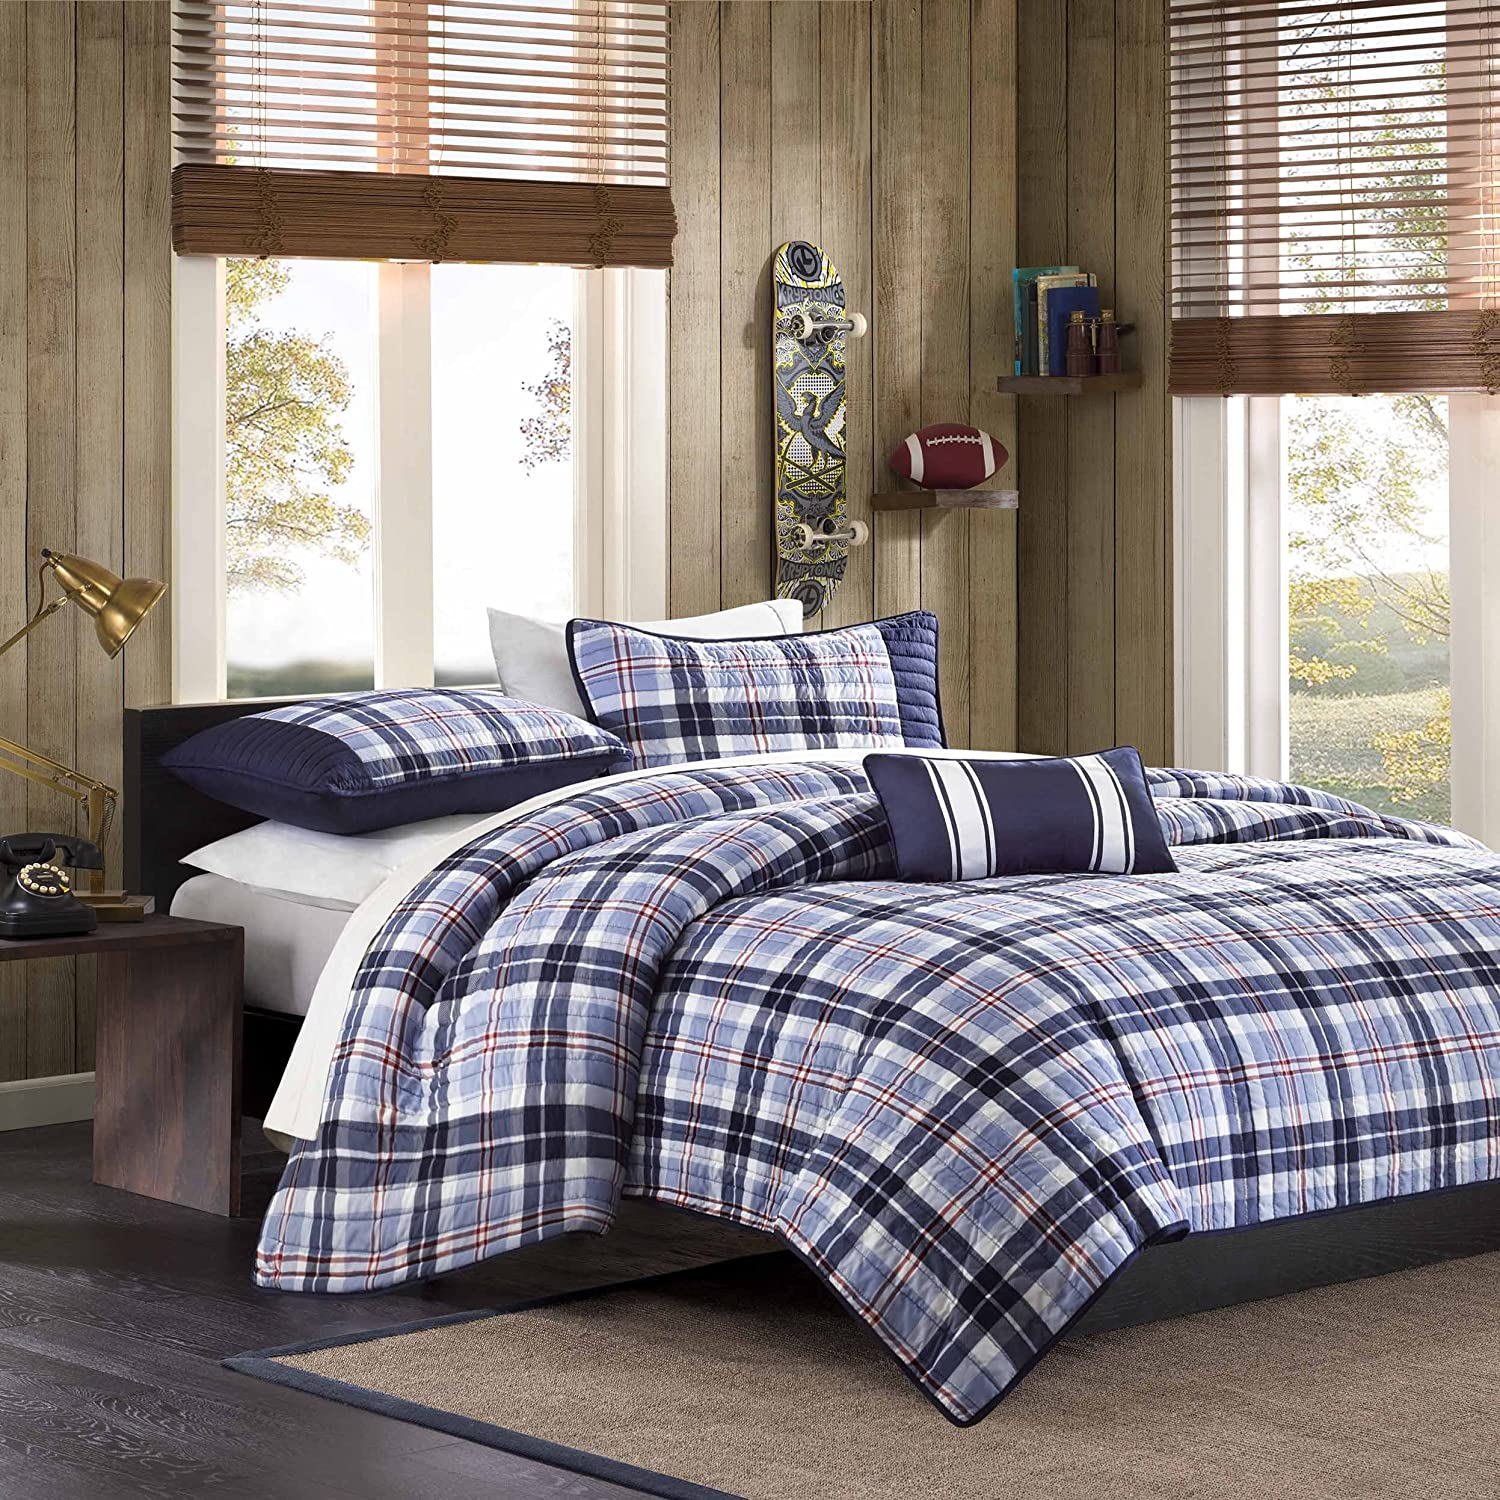 Mi-Zone Elliot Twin/Twin XL Size Teen Boys Quilt Bedding Set - Navy, Plaid – 3 Piece Boys Bedding Quilt Coverlets – Peach Skin Fabric Bed Quilts Quilted Coverlet JLA Home MZ80-272